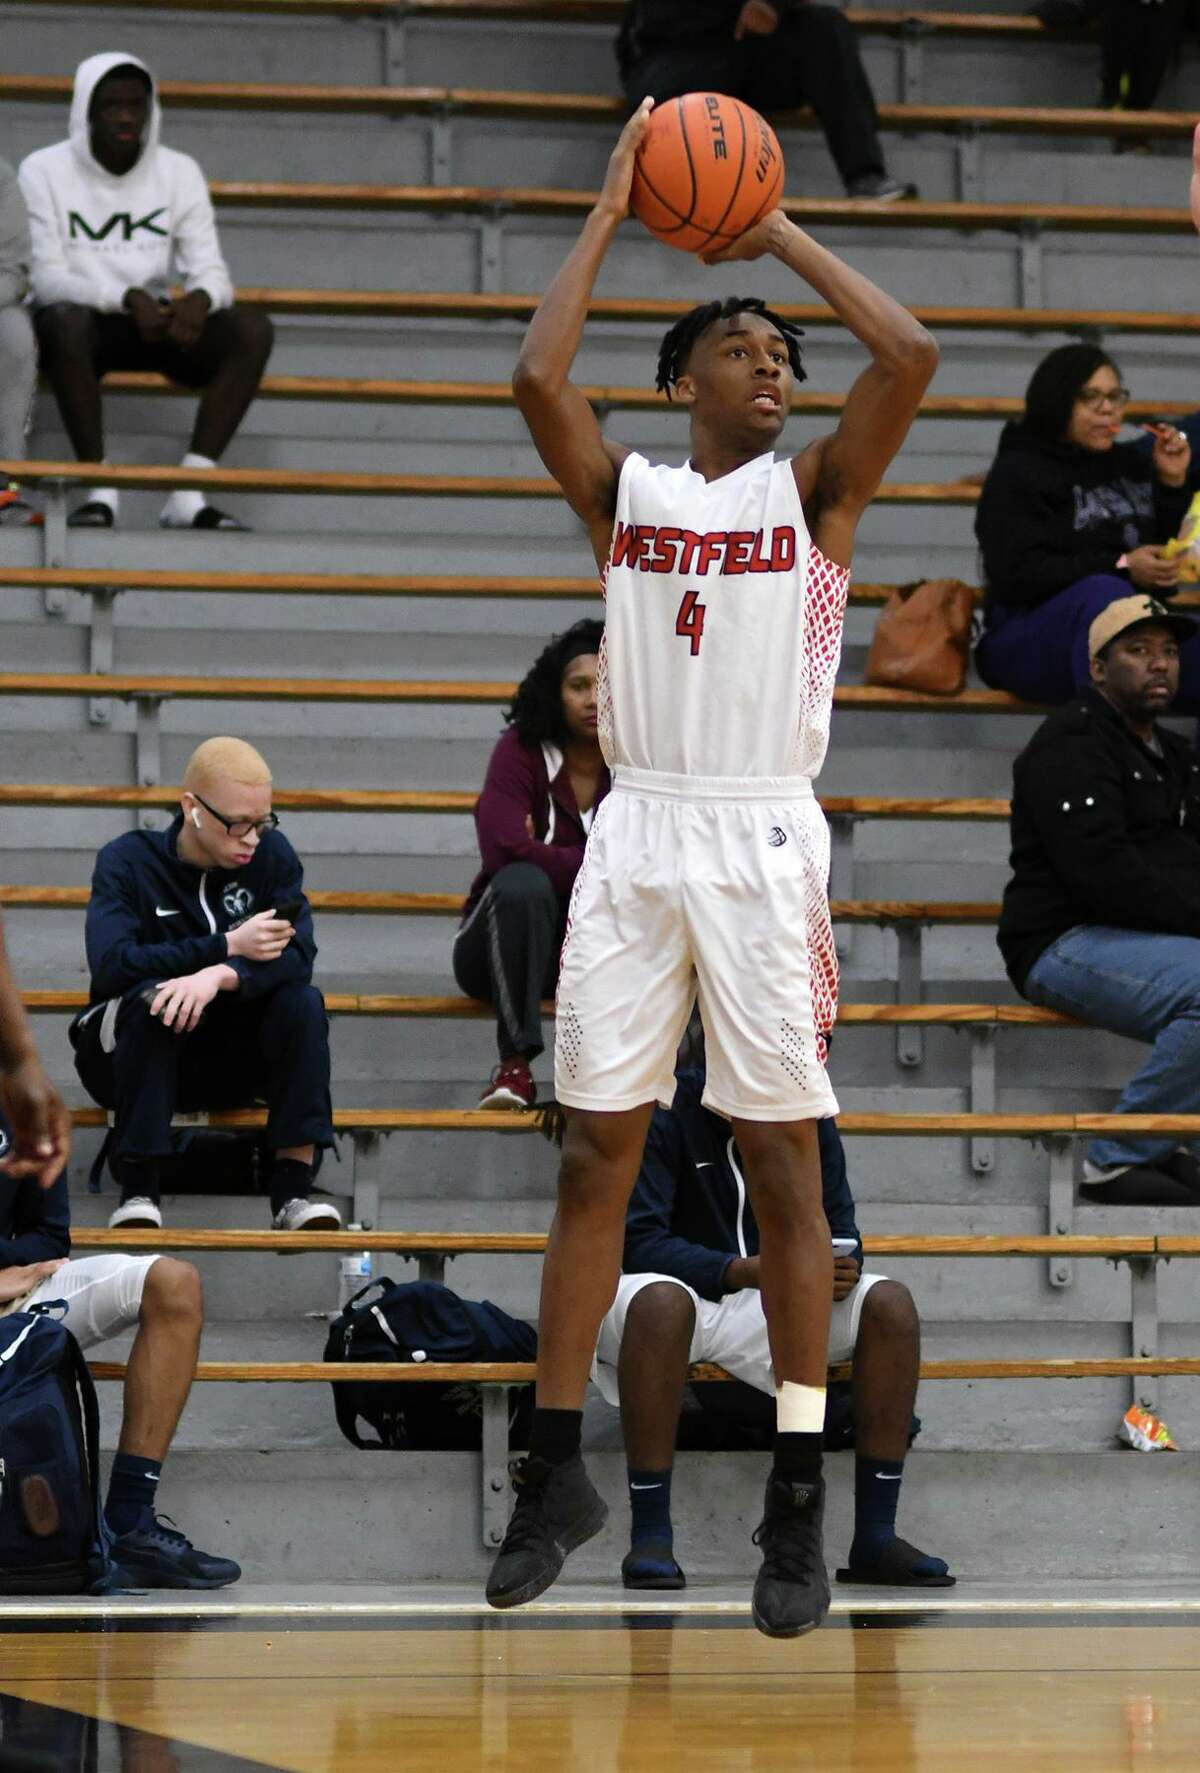 Westfield junior Eli Lee sets for a three point shot against Klein during their matchup at the 54th Annual Conroe Christmas Classic at Conroe High School on Dec. 28, 2018.